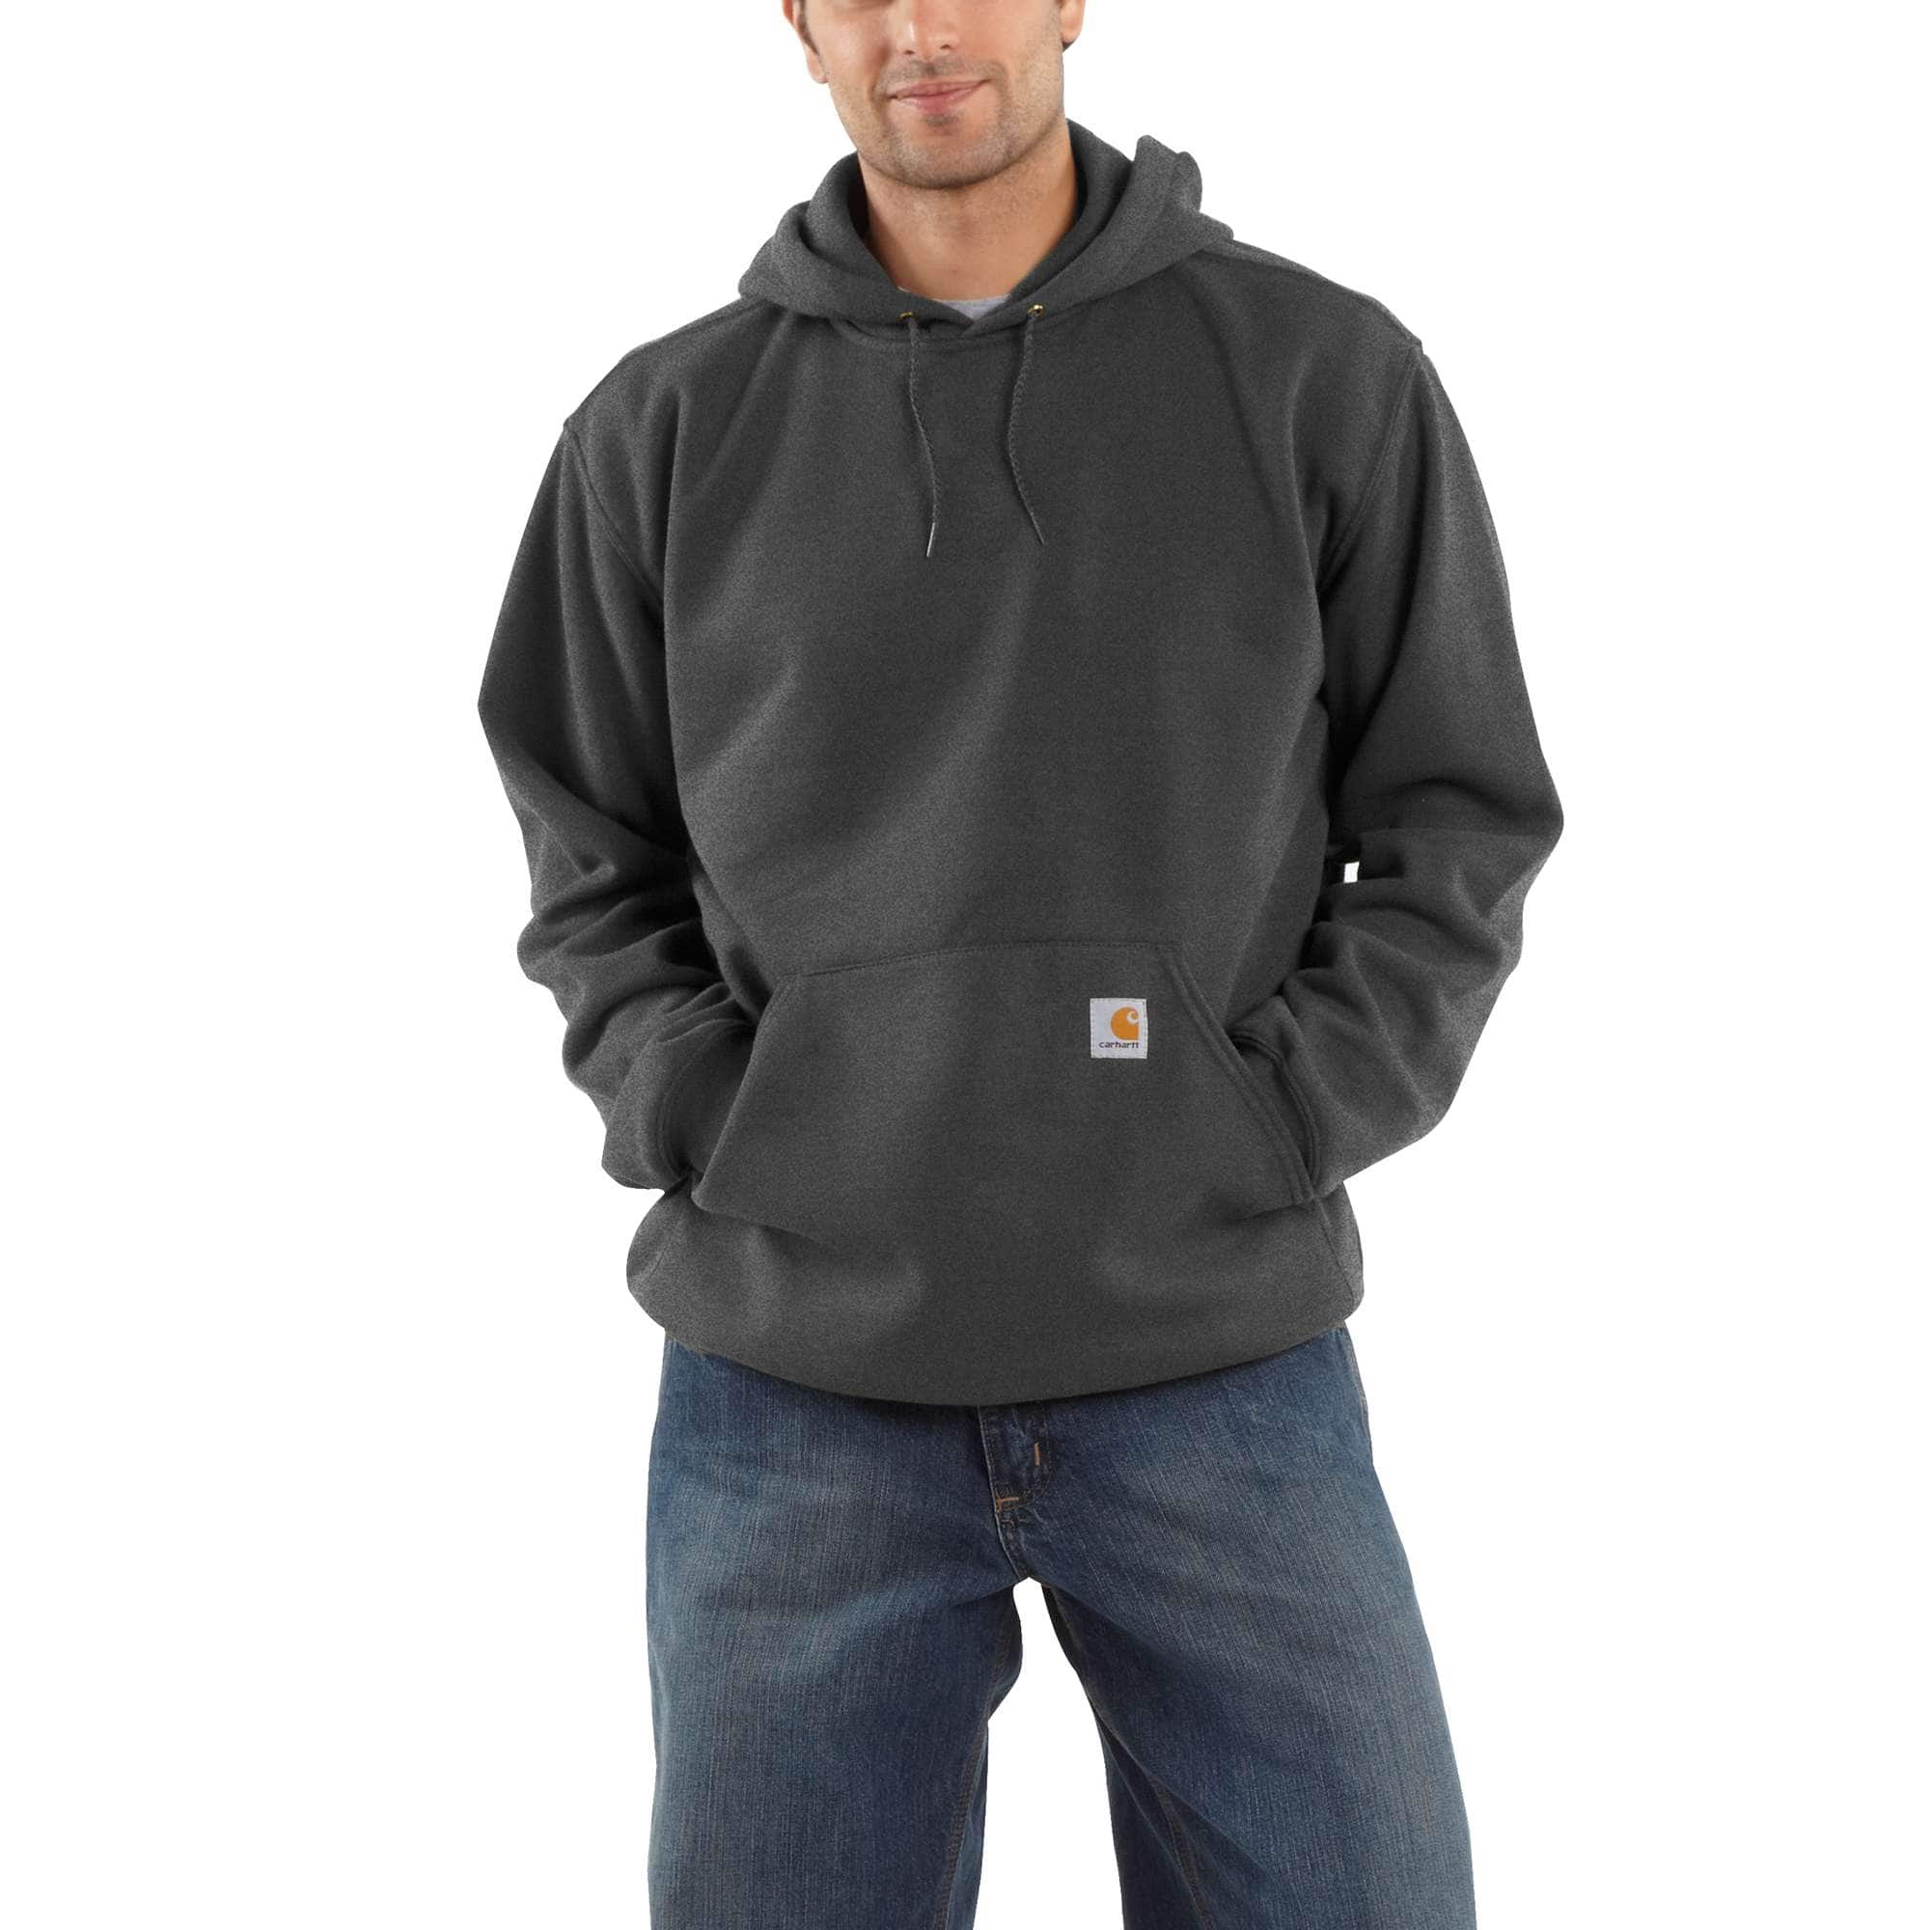 e135a9f493c0 Men s Hooded Pullover Midweight Sweatshirt OUT K121